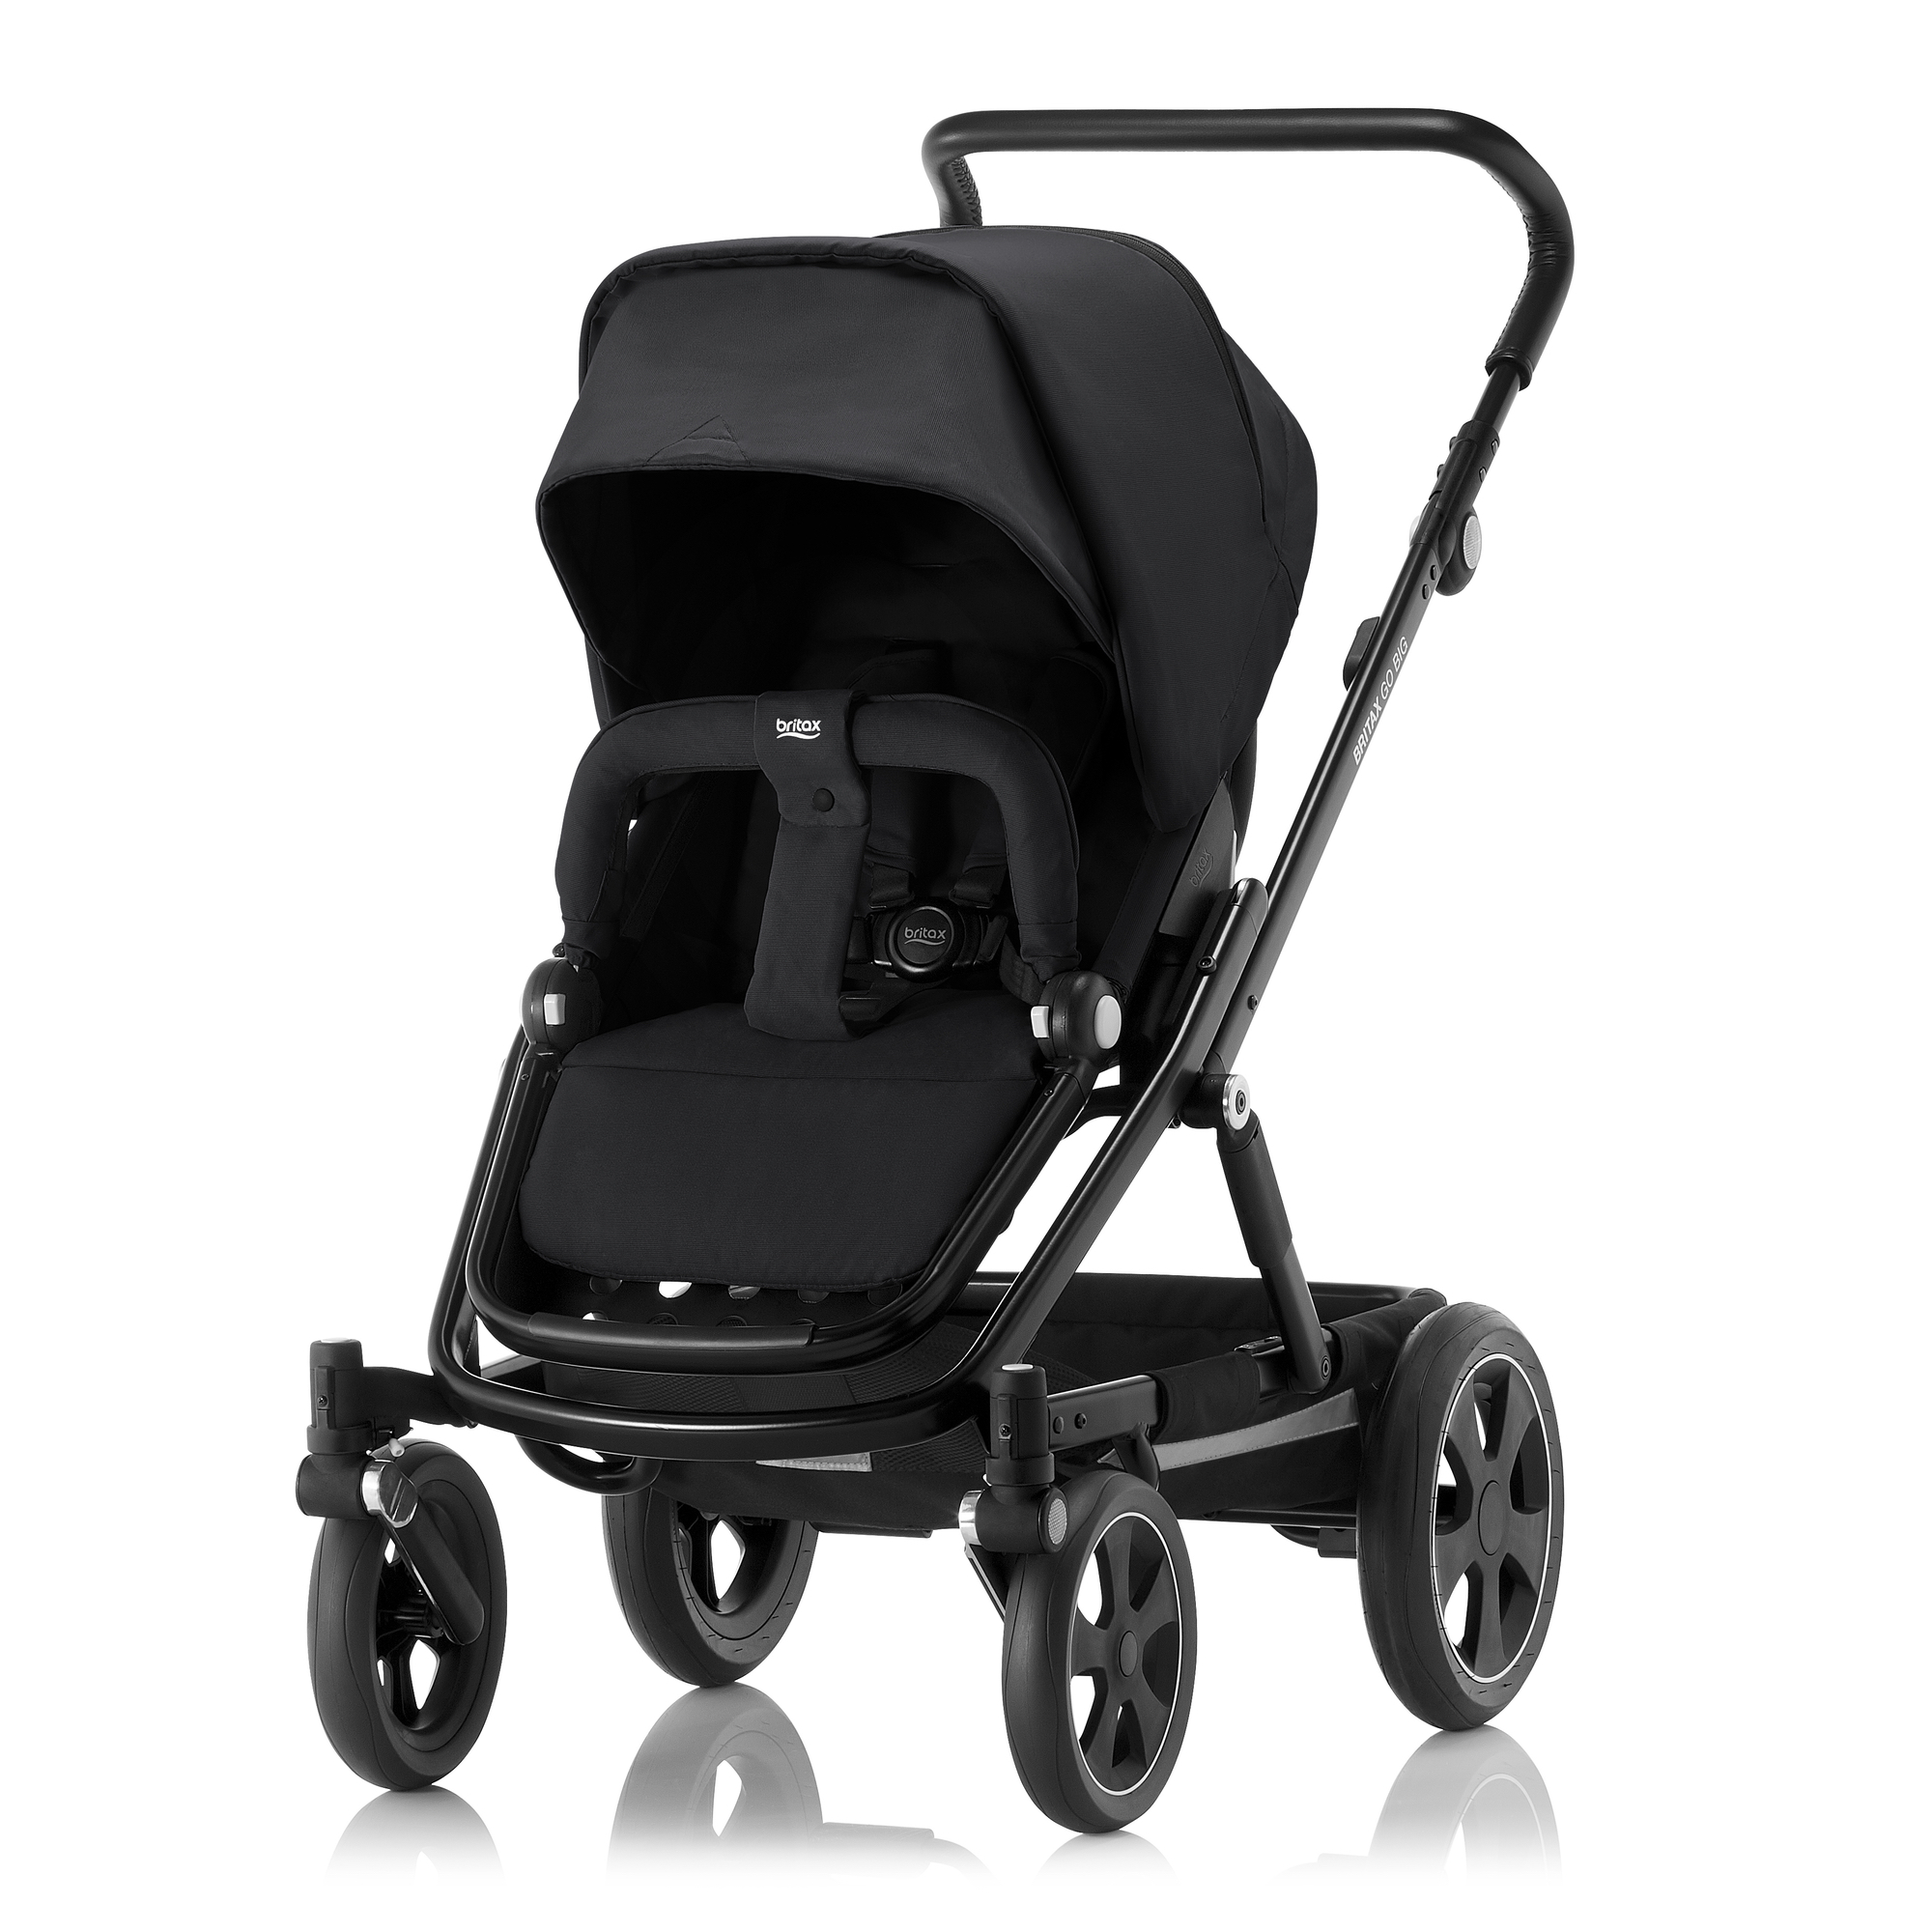 travelsysteme kinderwagen die zwergperten. Black Bedroom Furniture Sets. Home Design Ideas